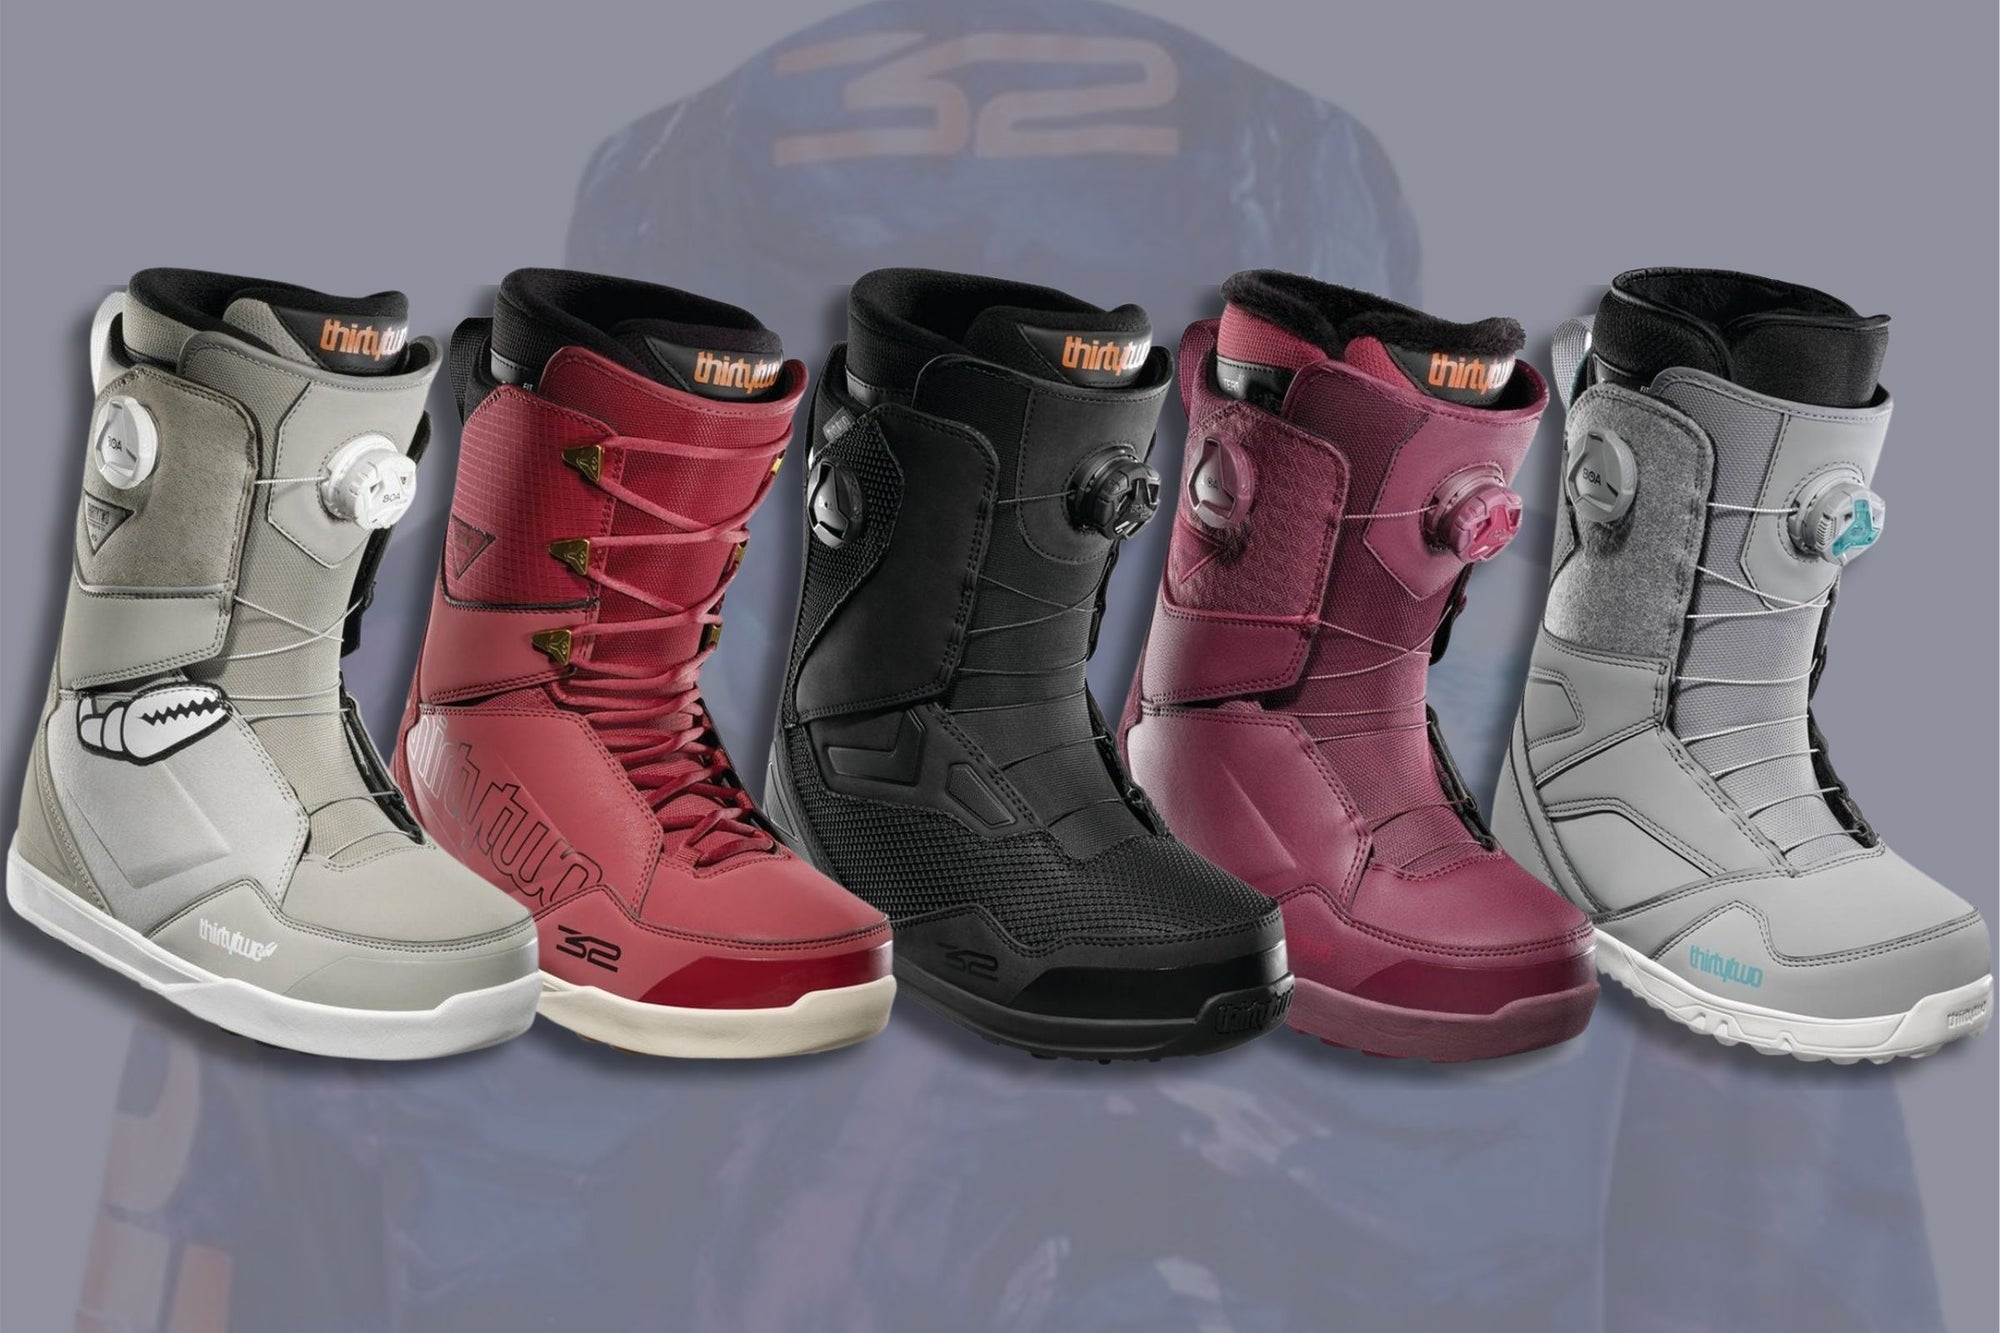 2021 ThirtyTwo Snowboard Boots Review